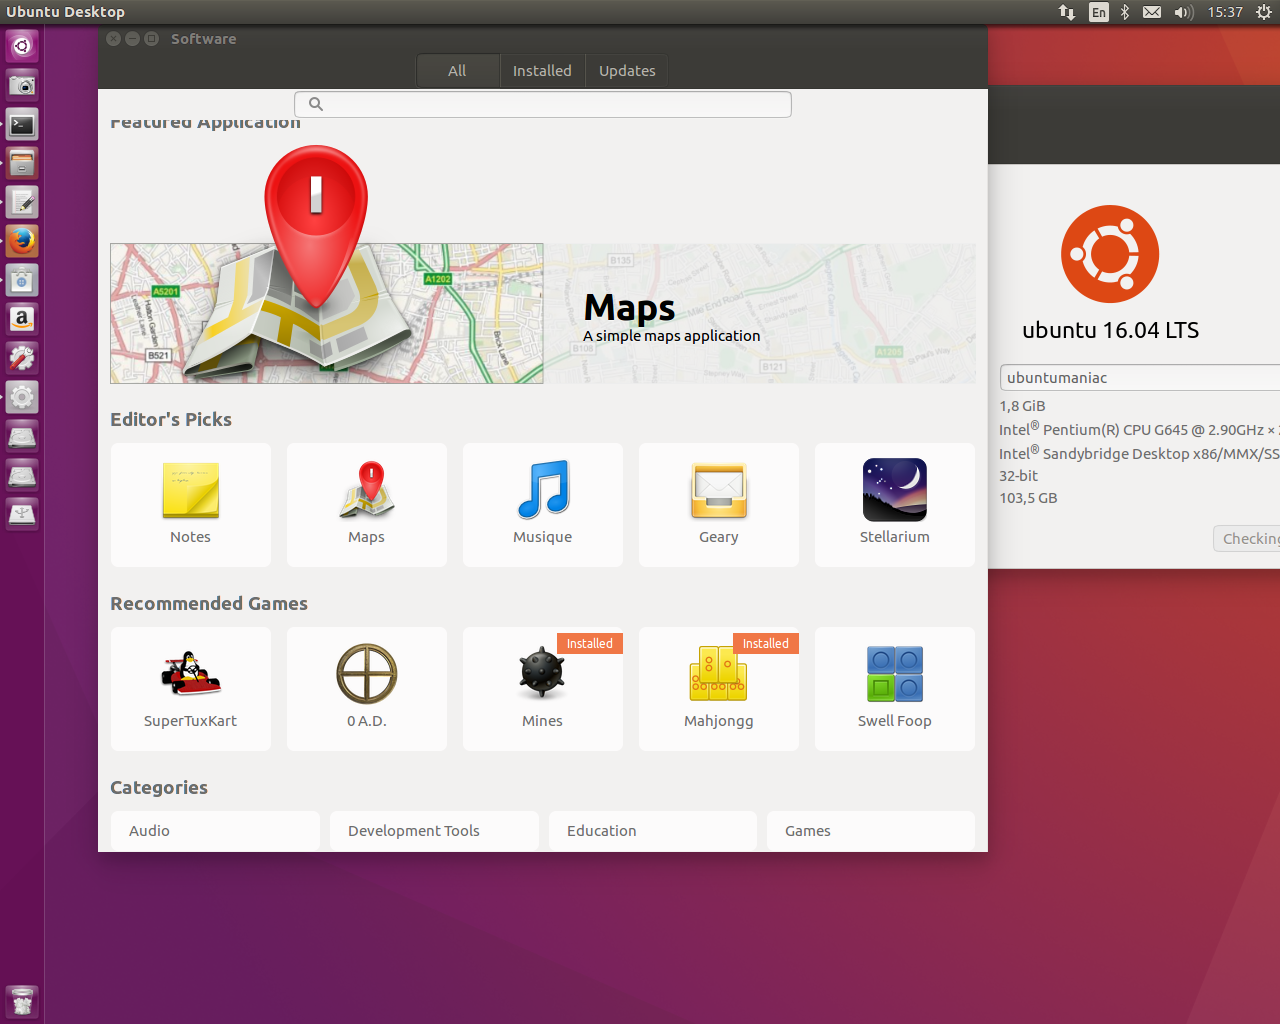 81971c7ee31 Ubuntu 16.04 LTS, due to be released on 21 April 2016, is expected to  include Unity 8 running natively on Mir. It will use systemd instead of  Upstart as its ...